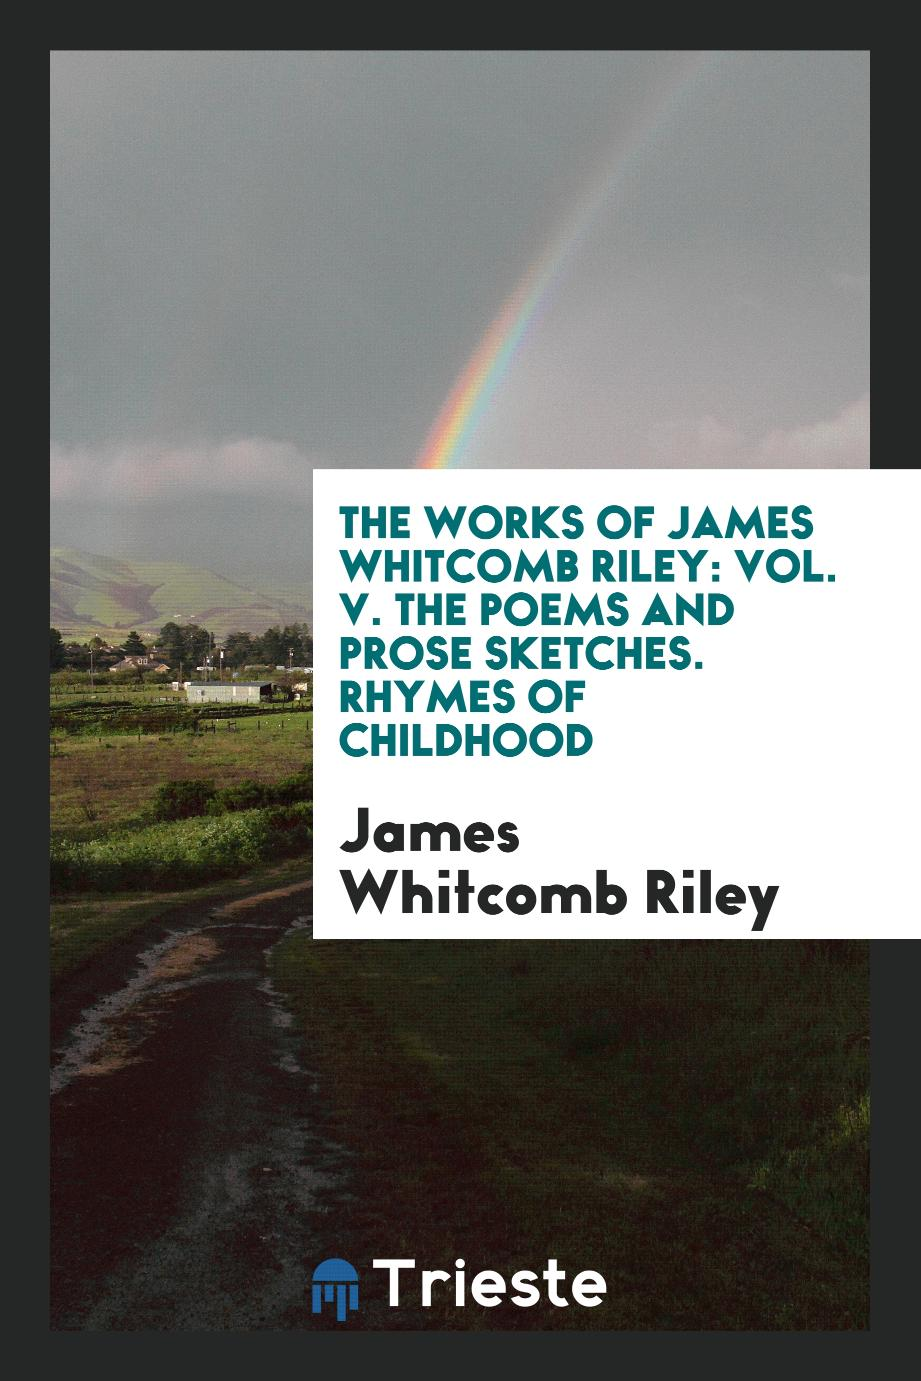 The Works of James Whitcomb Riley: Vol. V. The Poems and Prose Sketches. Rhymes of Childhood